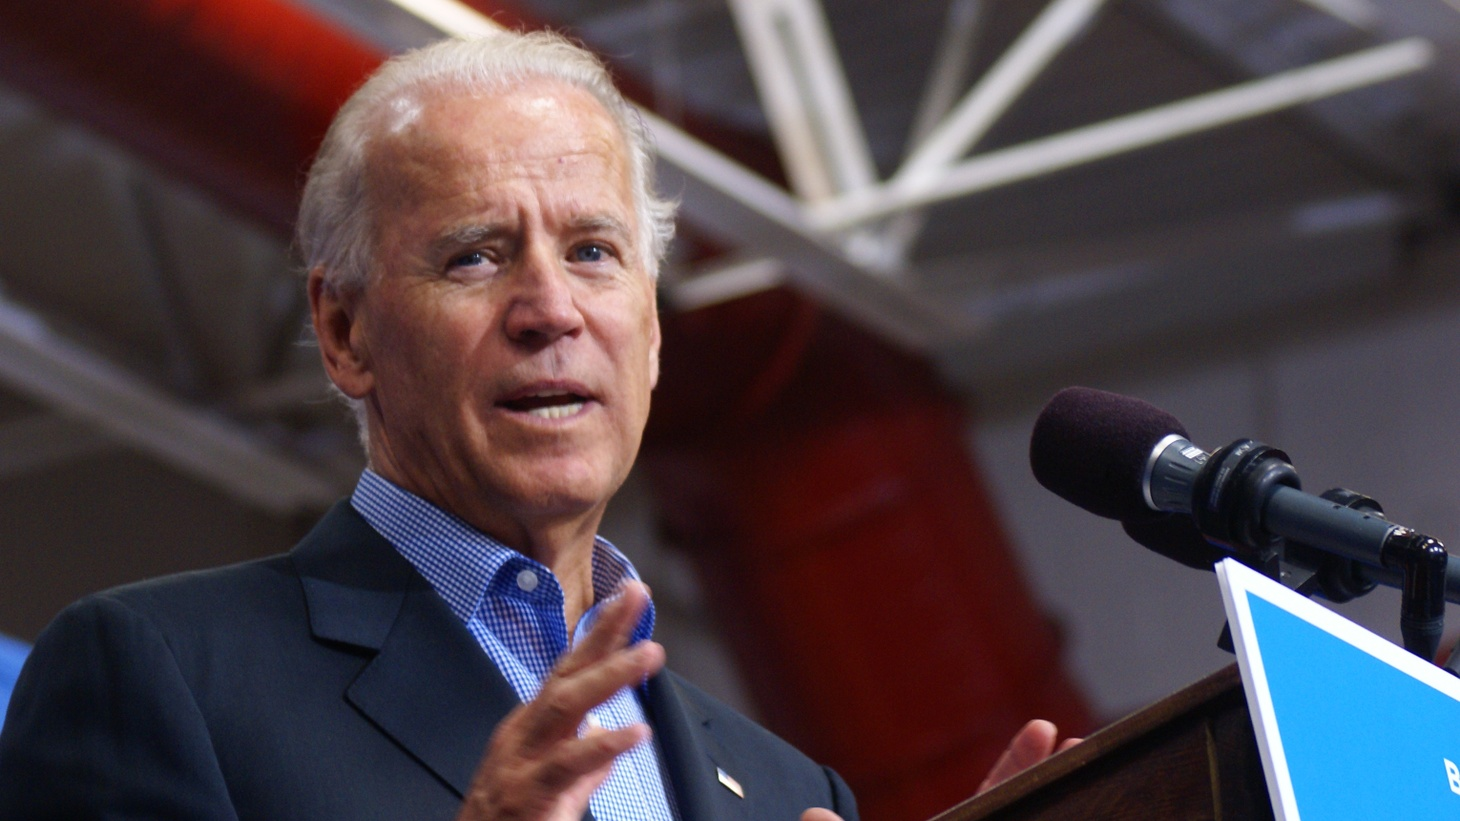 A new poll by Quinnipiac University says Trump would lose by double digits to the top five Democratic candidates, including Joe Biden, if the election were held today.